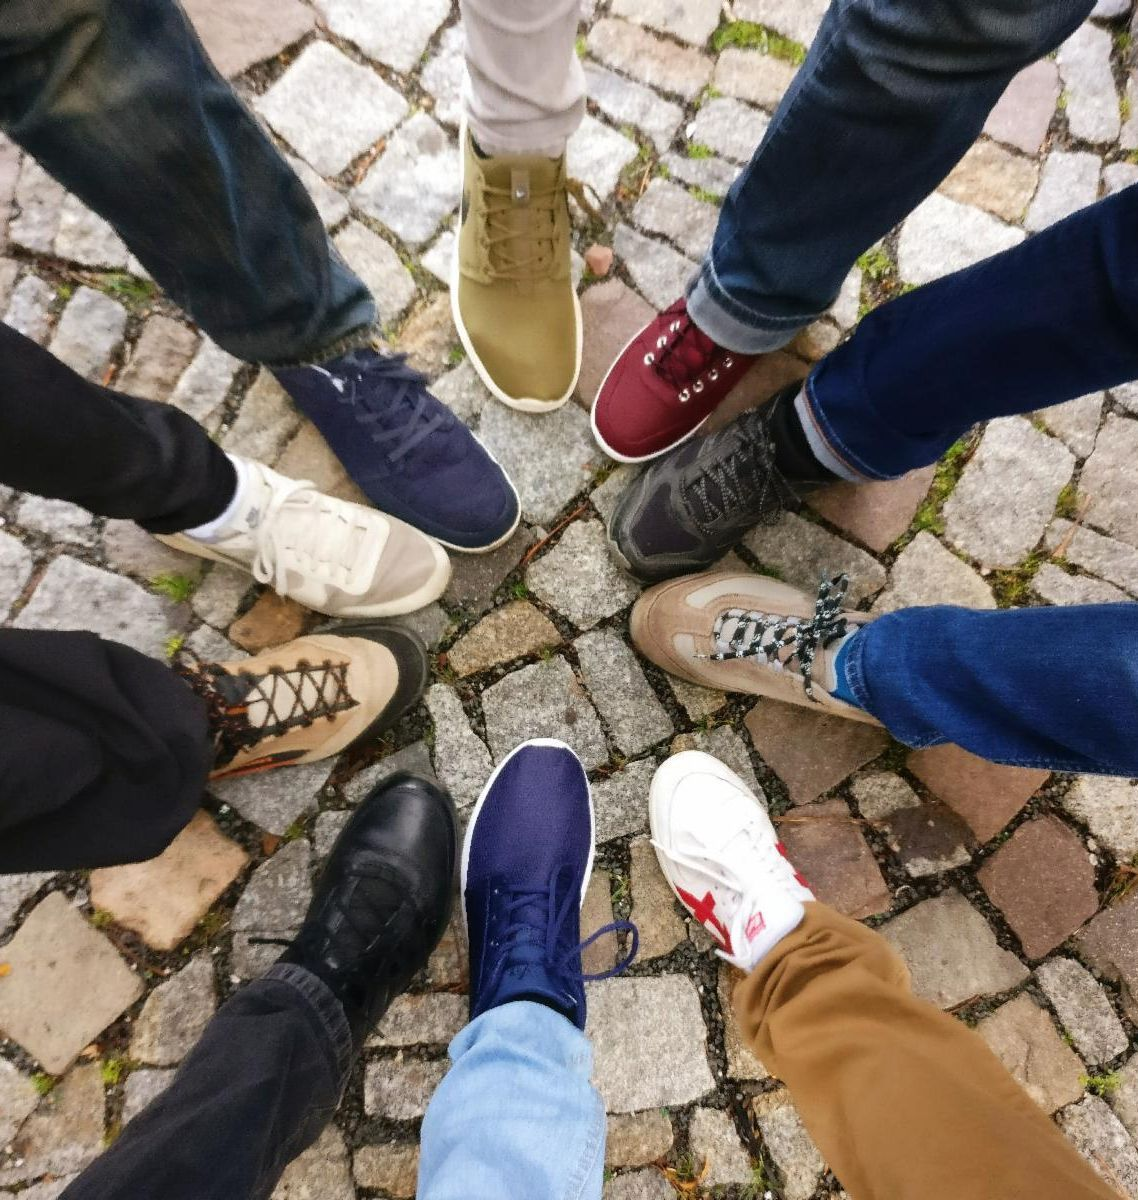 The feet of different people all pointing towards each other in a circle. The shoes and pants are all different colors.